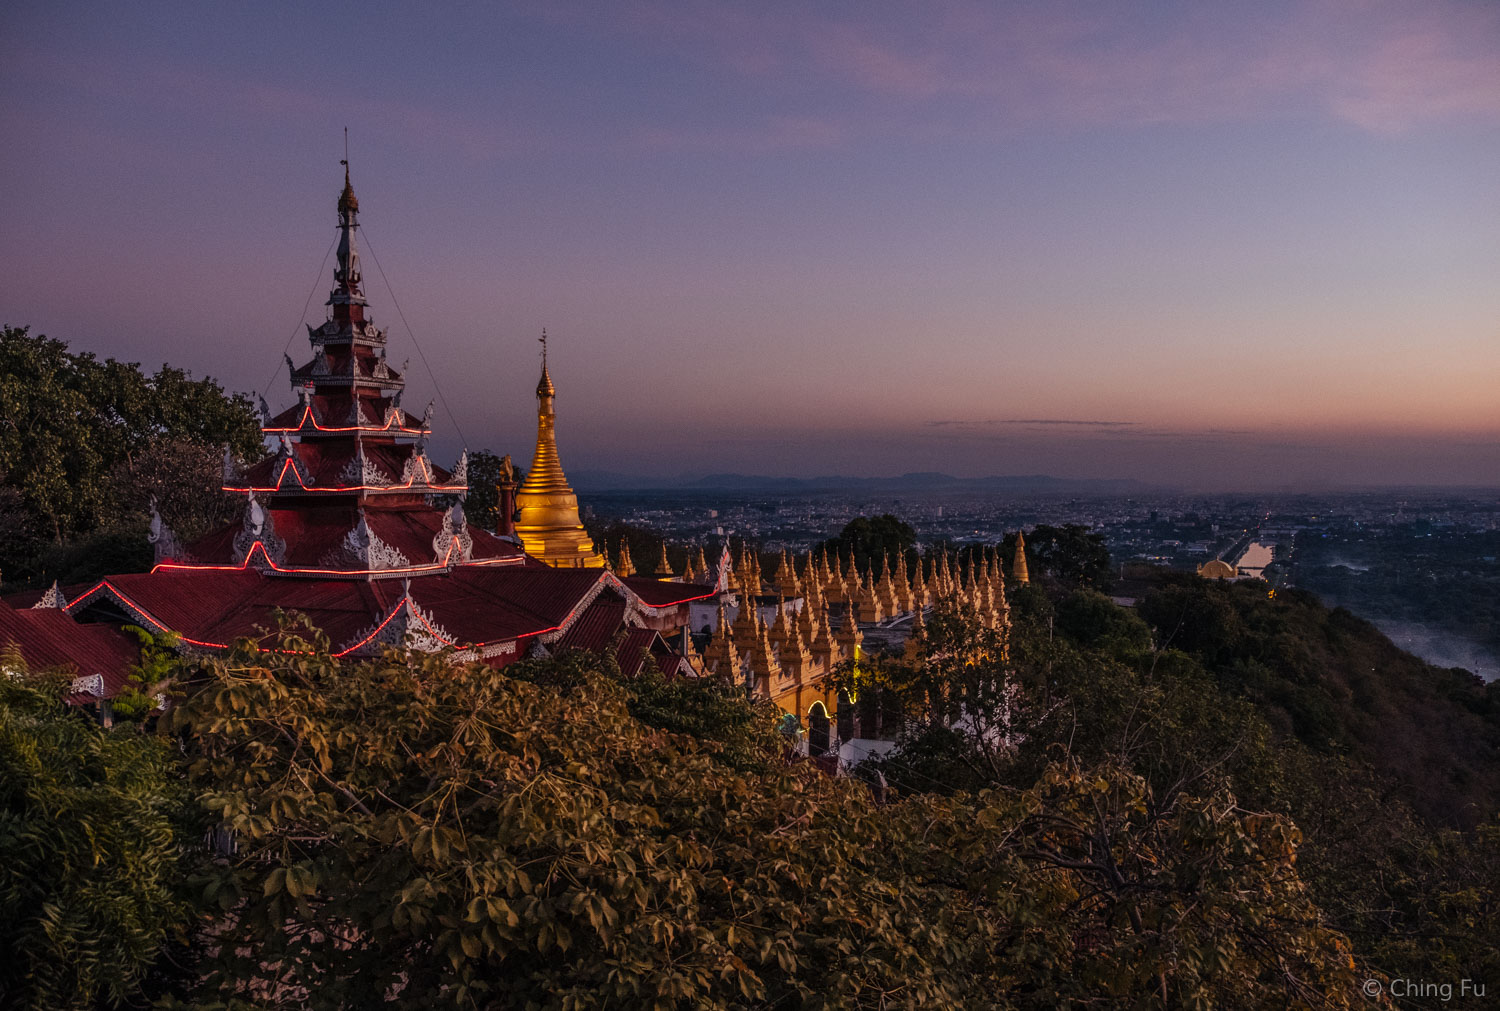 View of the structure I walked through to get to the summit. Mandalay Palace's moat reflects the sunset in the background.